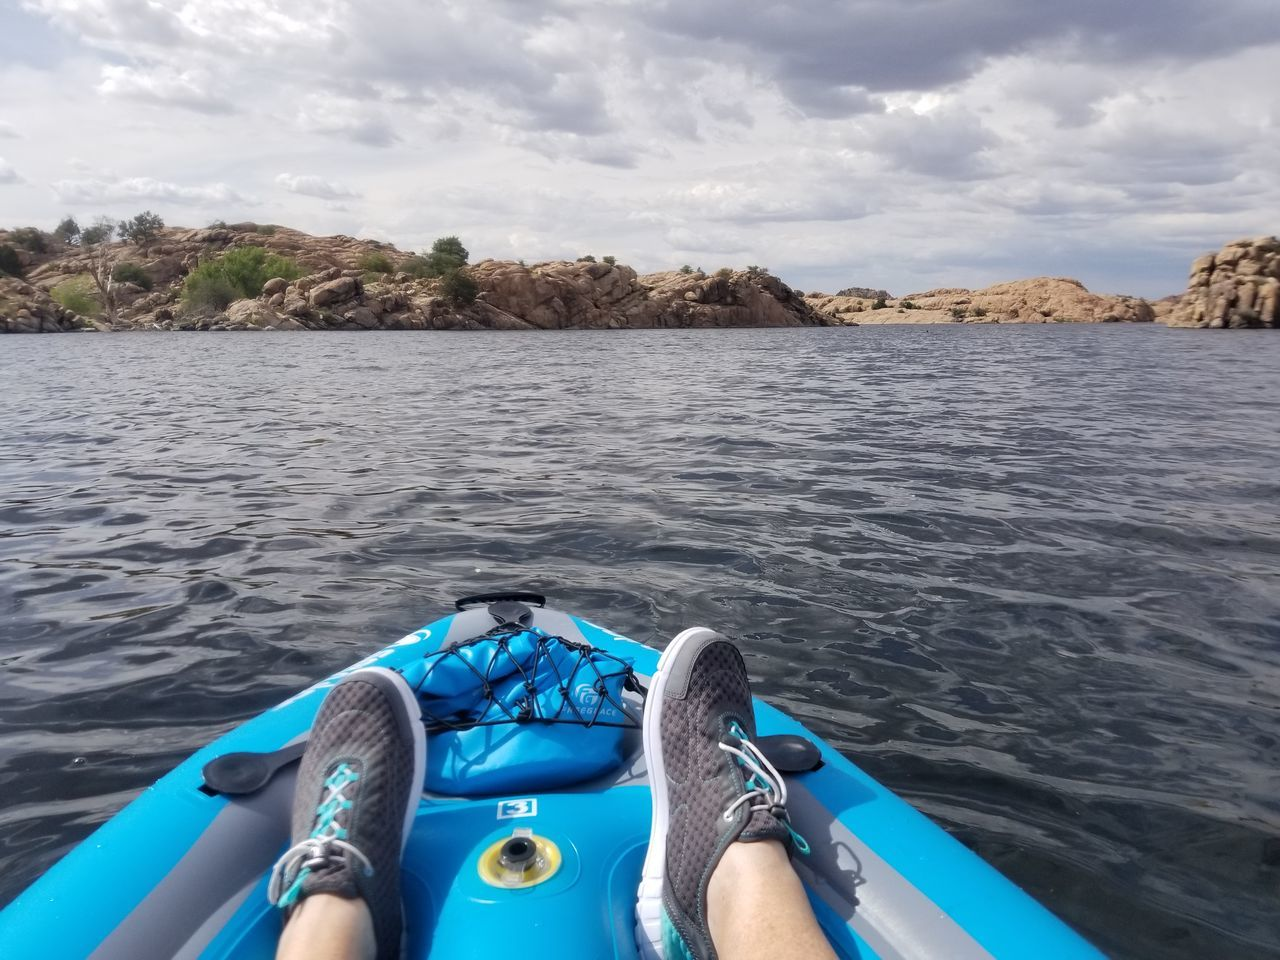 Kayaking Water Surface Lake On The Water Fun Exercise Relaxing Time Inflatables Awesome Day ❤️ Cloud - Sky Nautical Vessel Outdoors Adult Shoe Personal Perspective Human Leg Rocky Shore